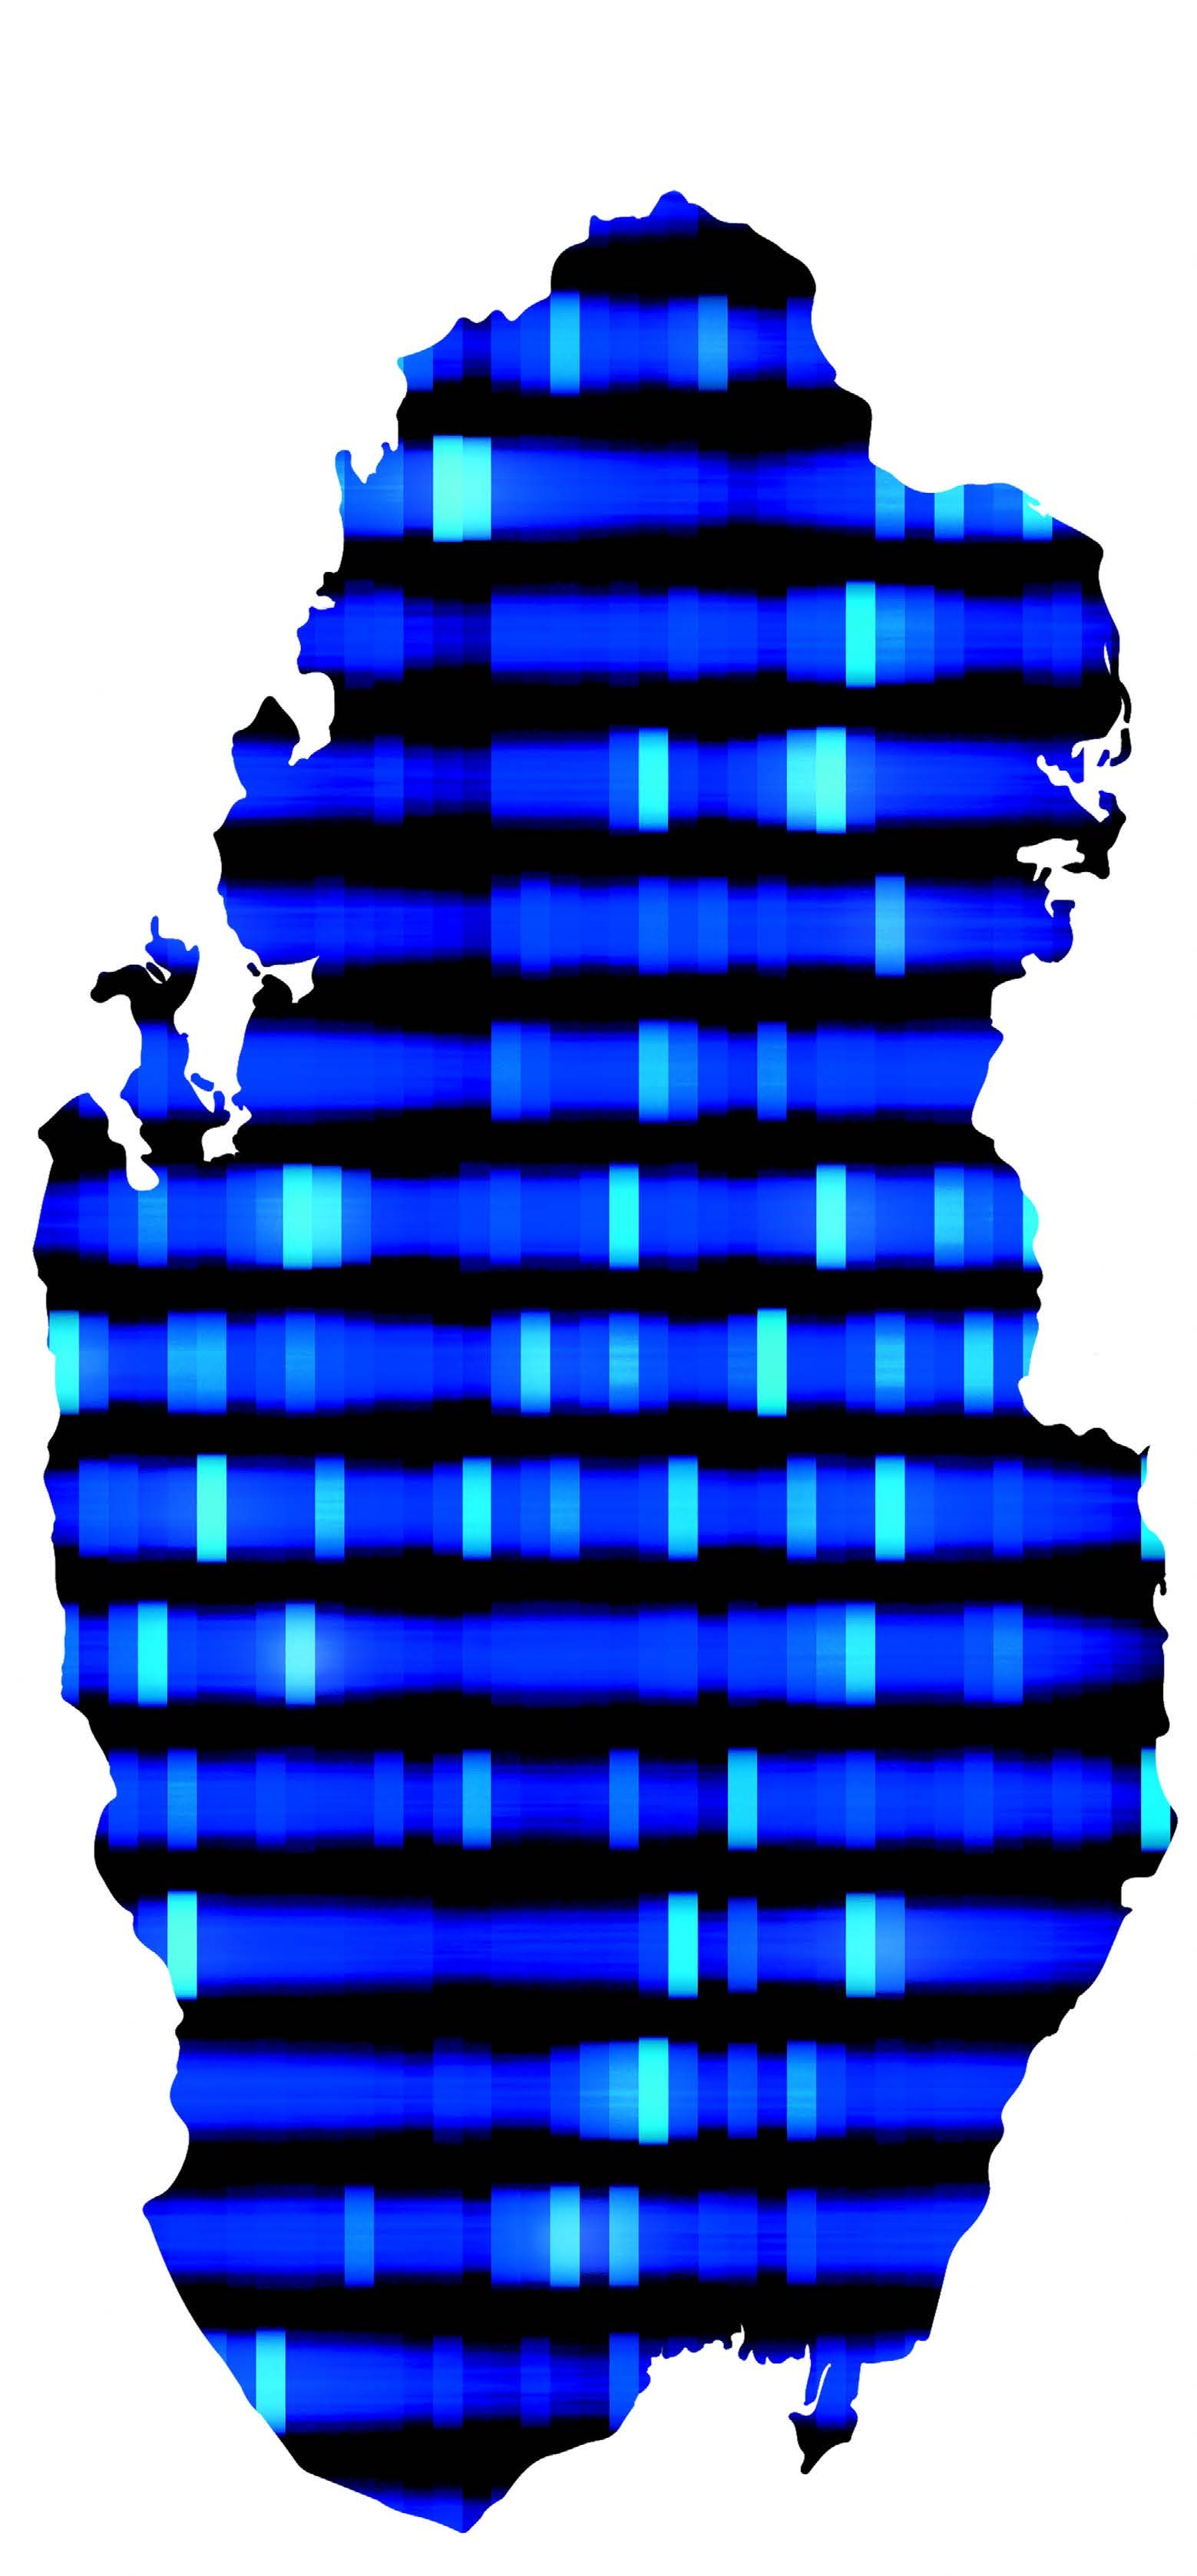 an illustration of DNA in the shape of Qatar.